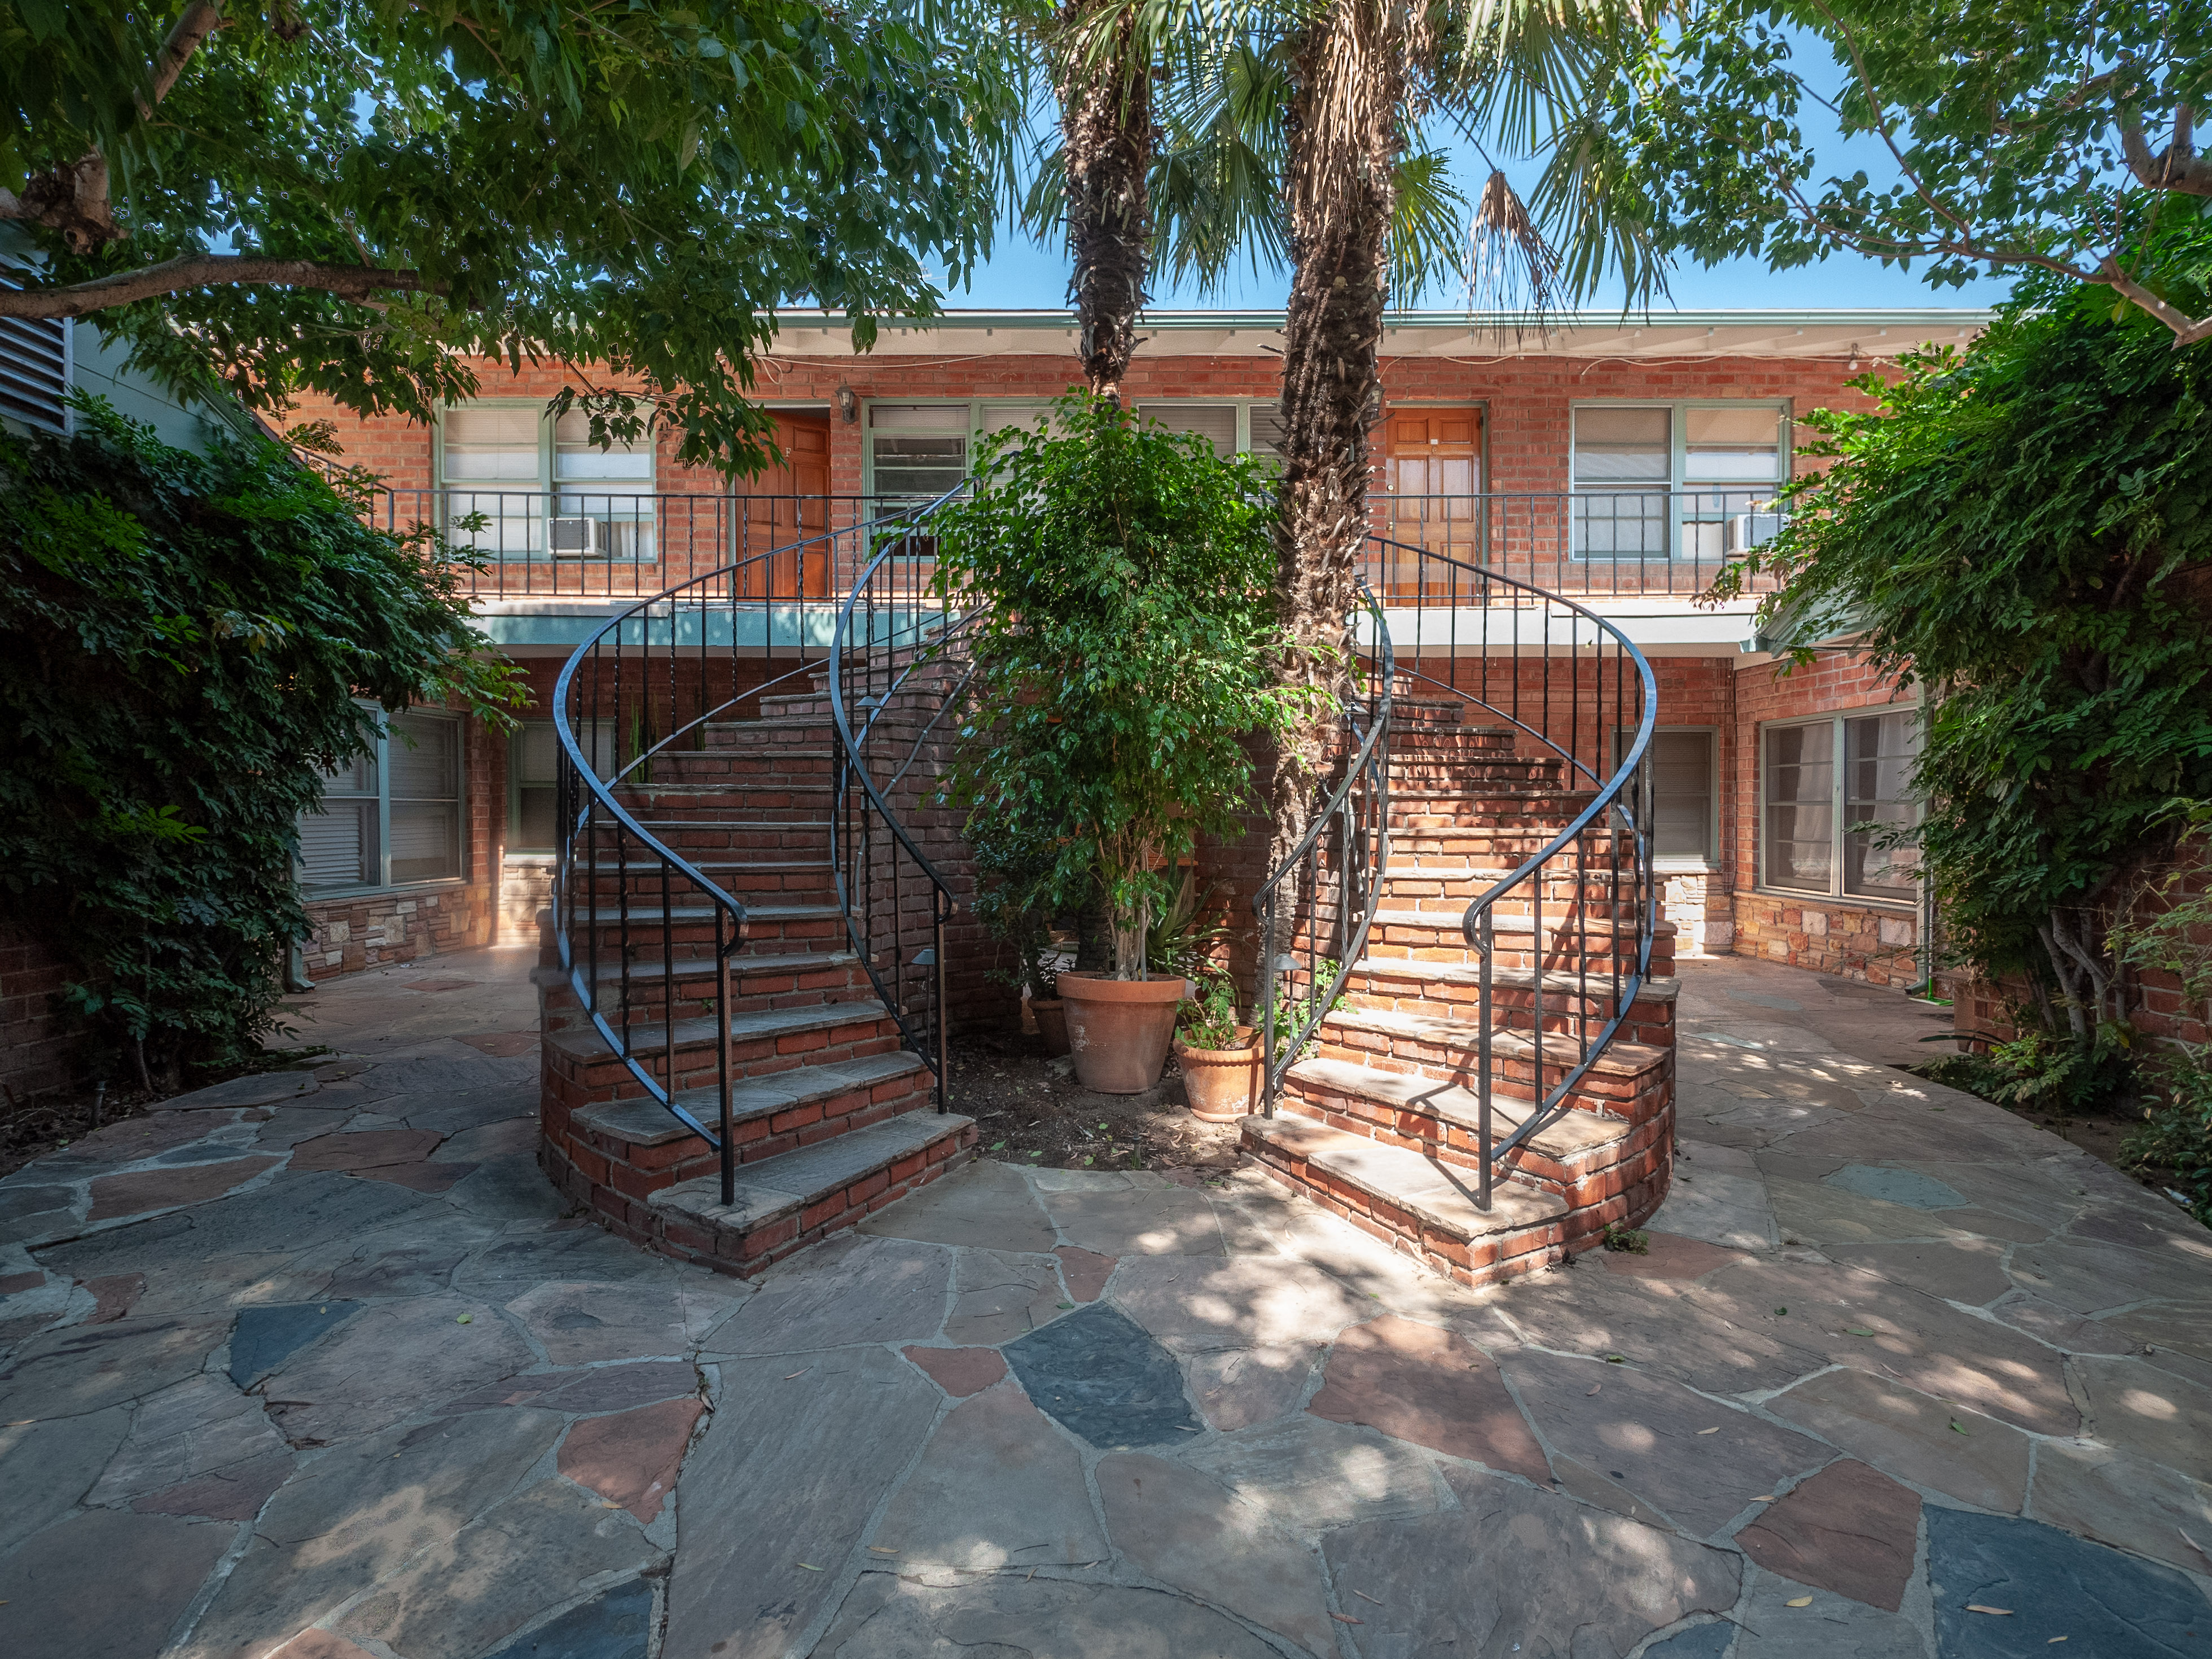 Brick & Beach Vibes In Santa Monica 1st Floor 1BD Condo With Bonus Room & Parking